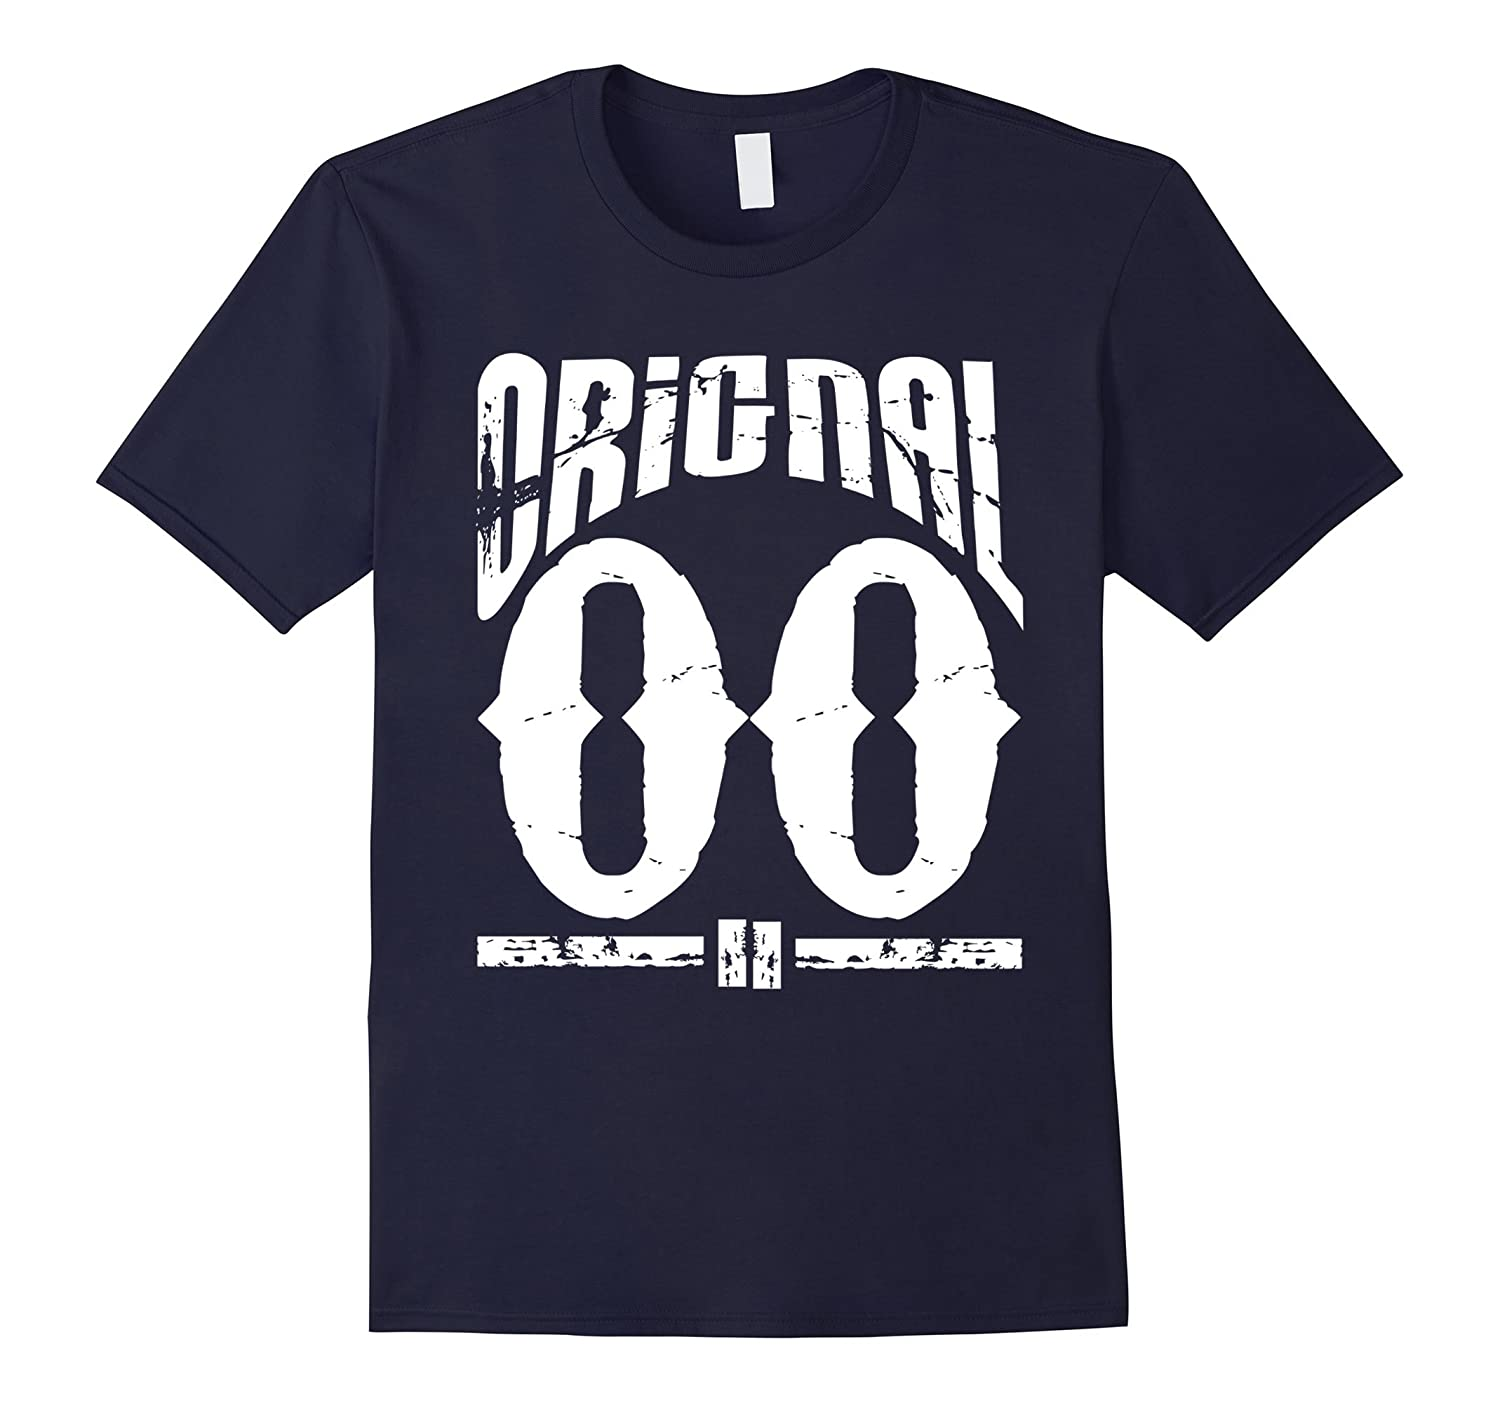 Original 2000 16 Years Boy & Girl 16th Birthday Gift T-Shirt-CL